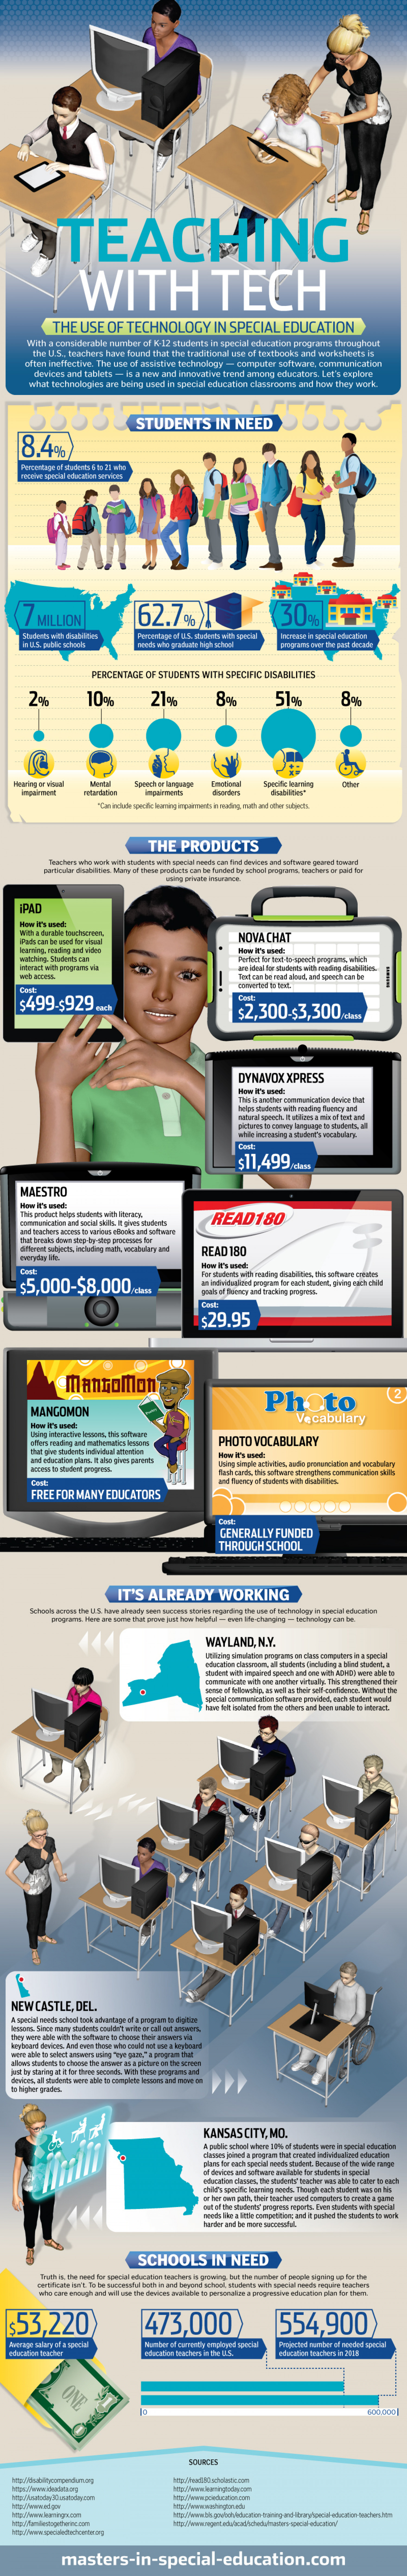 Teaching with Tech: The Use of Technology in Special Education Infographic